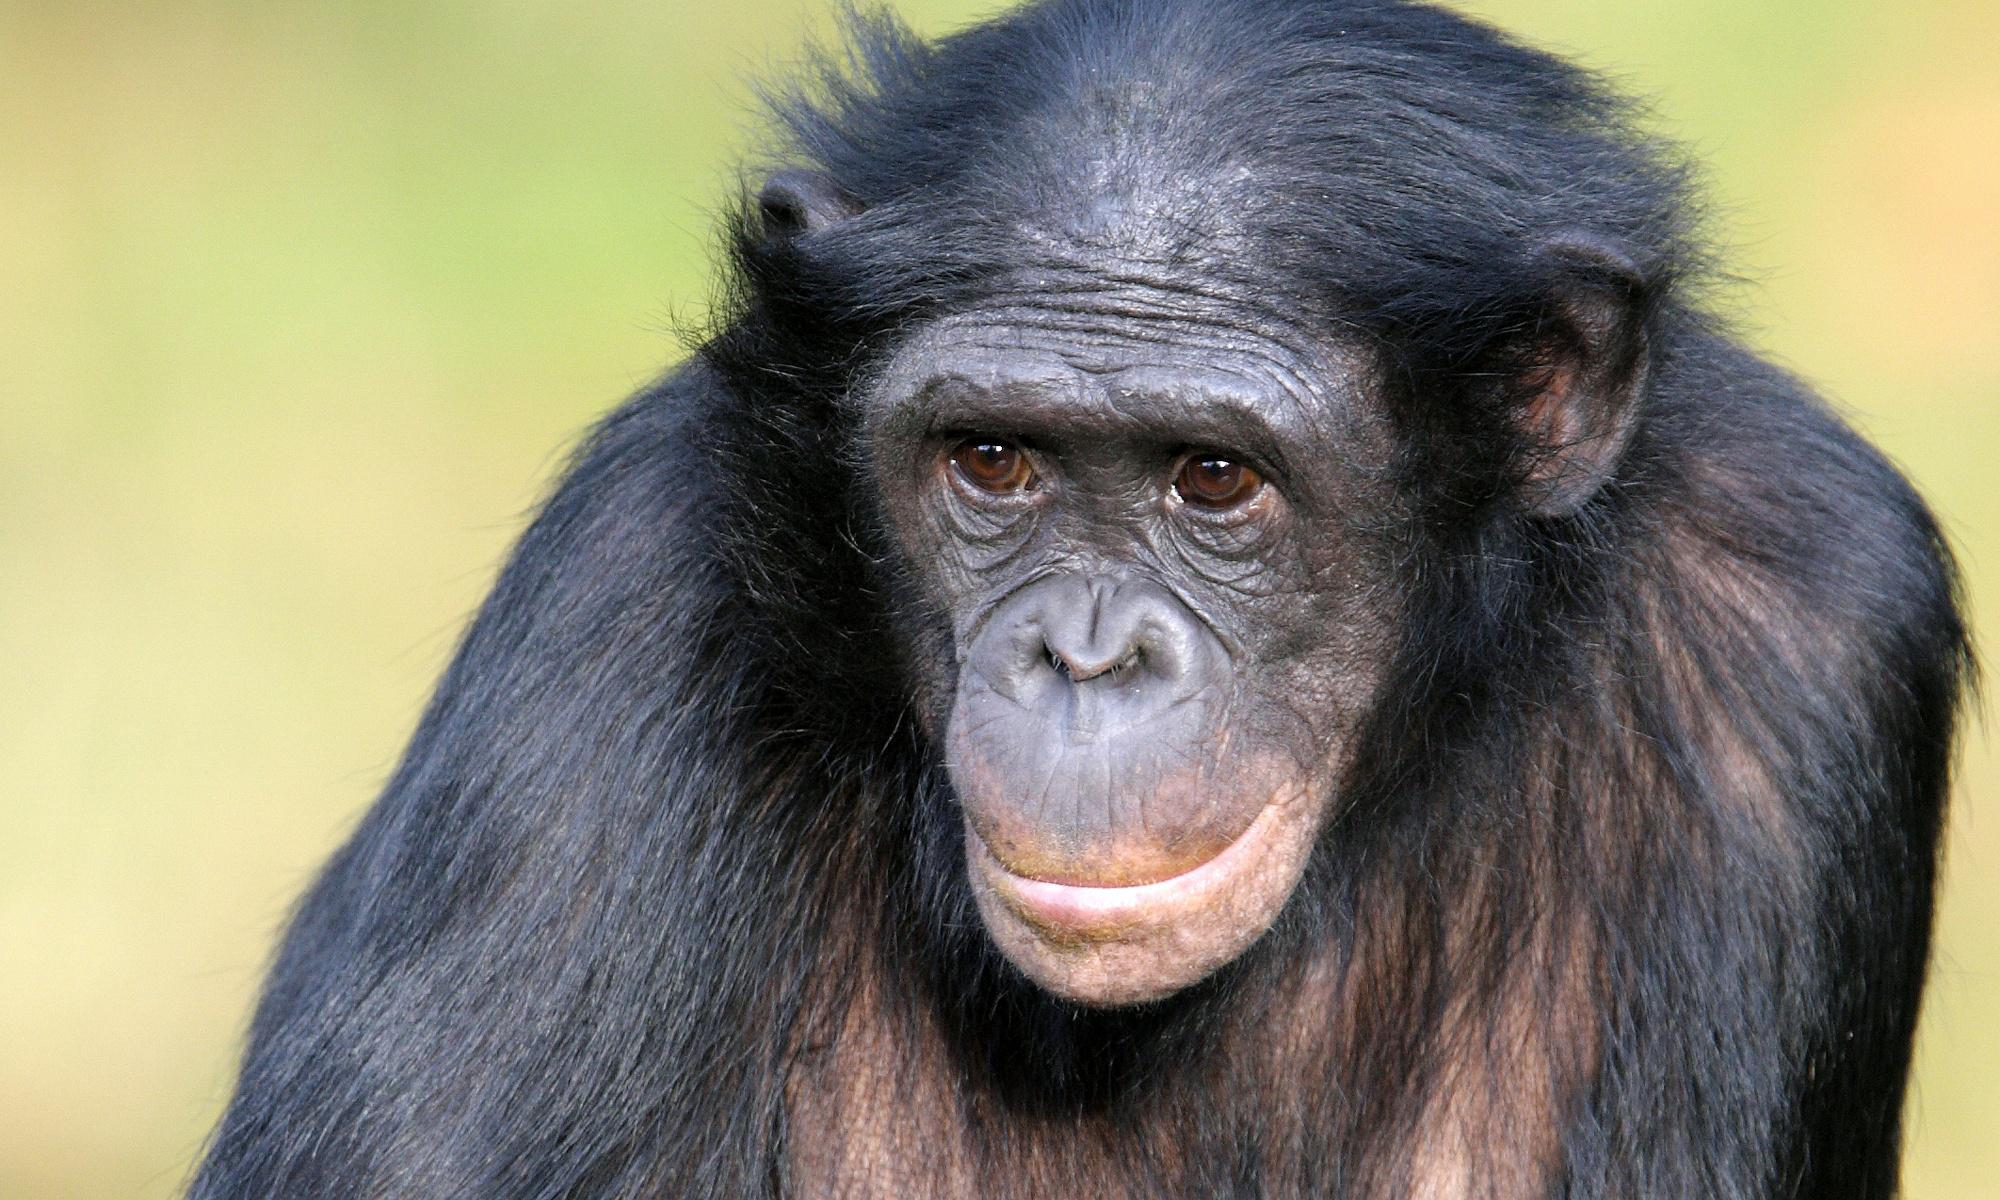 Pushy bonobo mothers help sons find sexual partners, scientists find